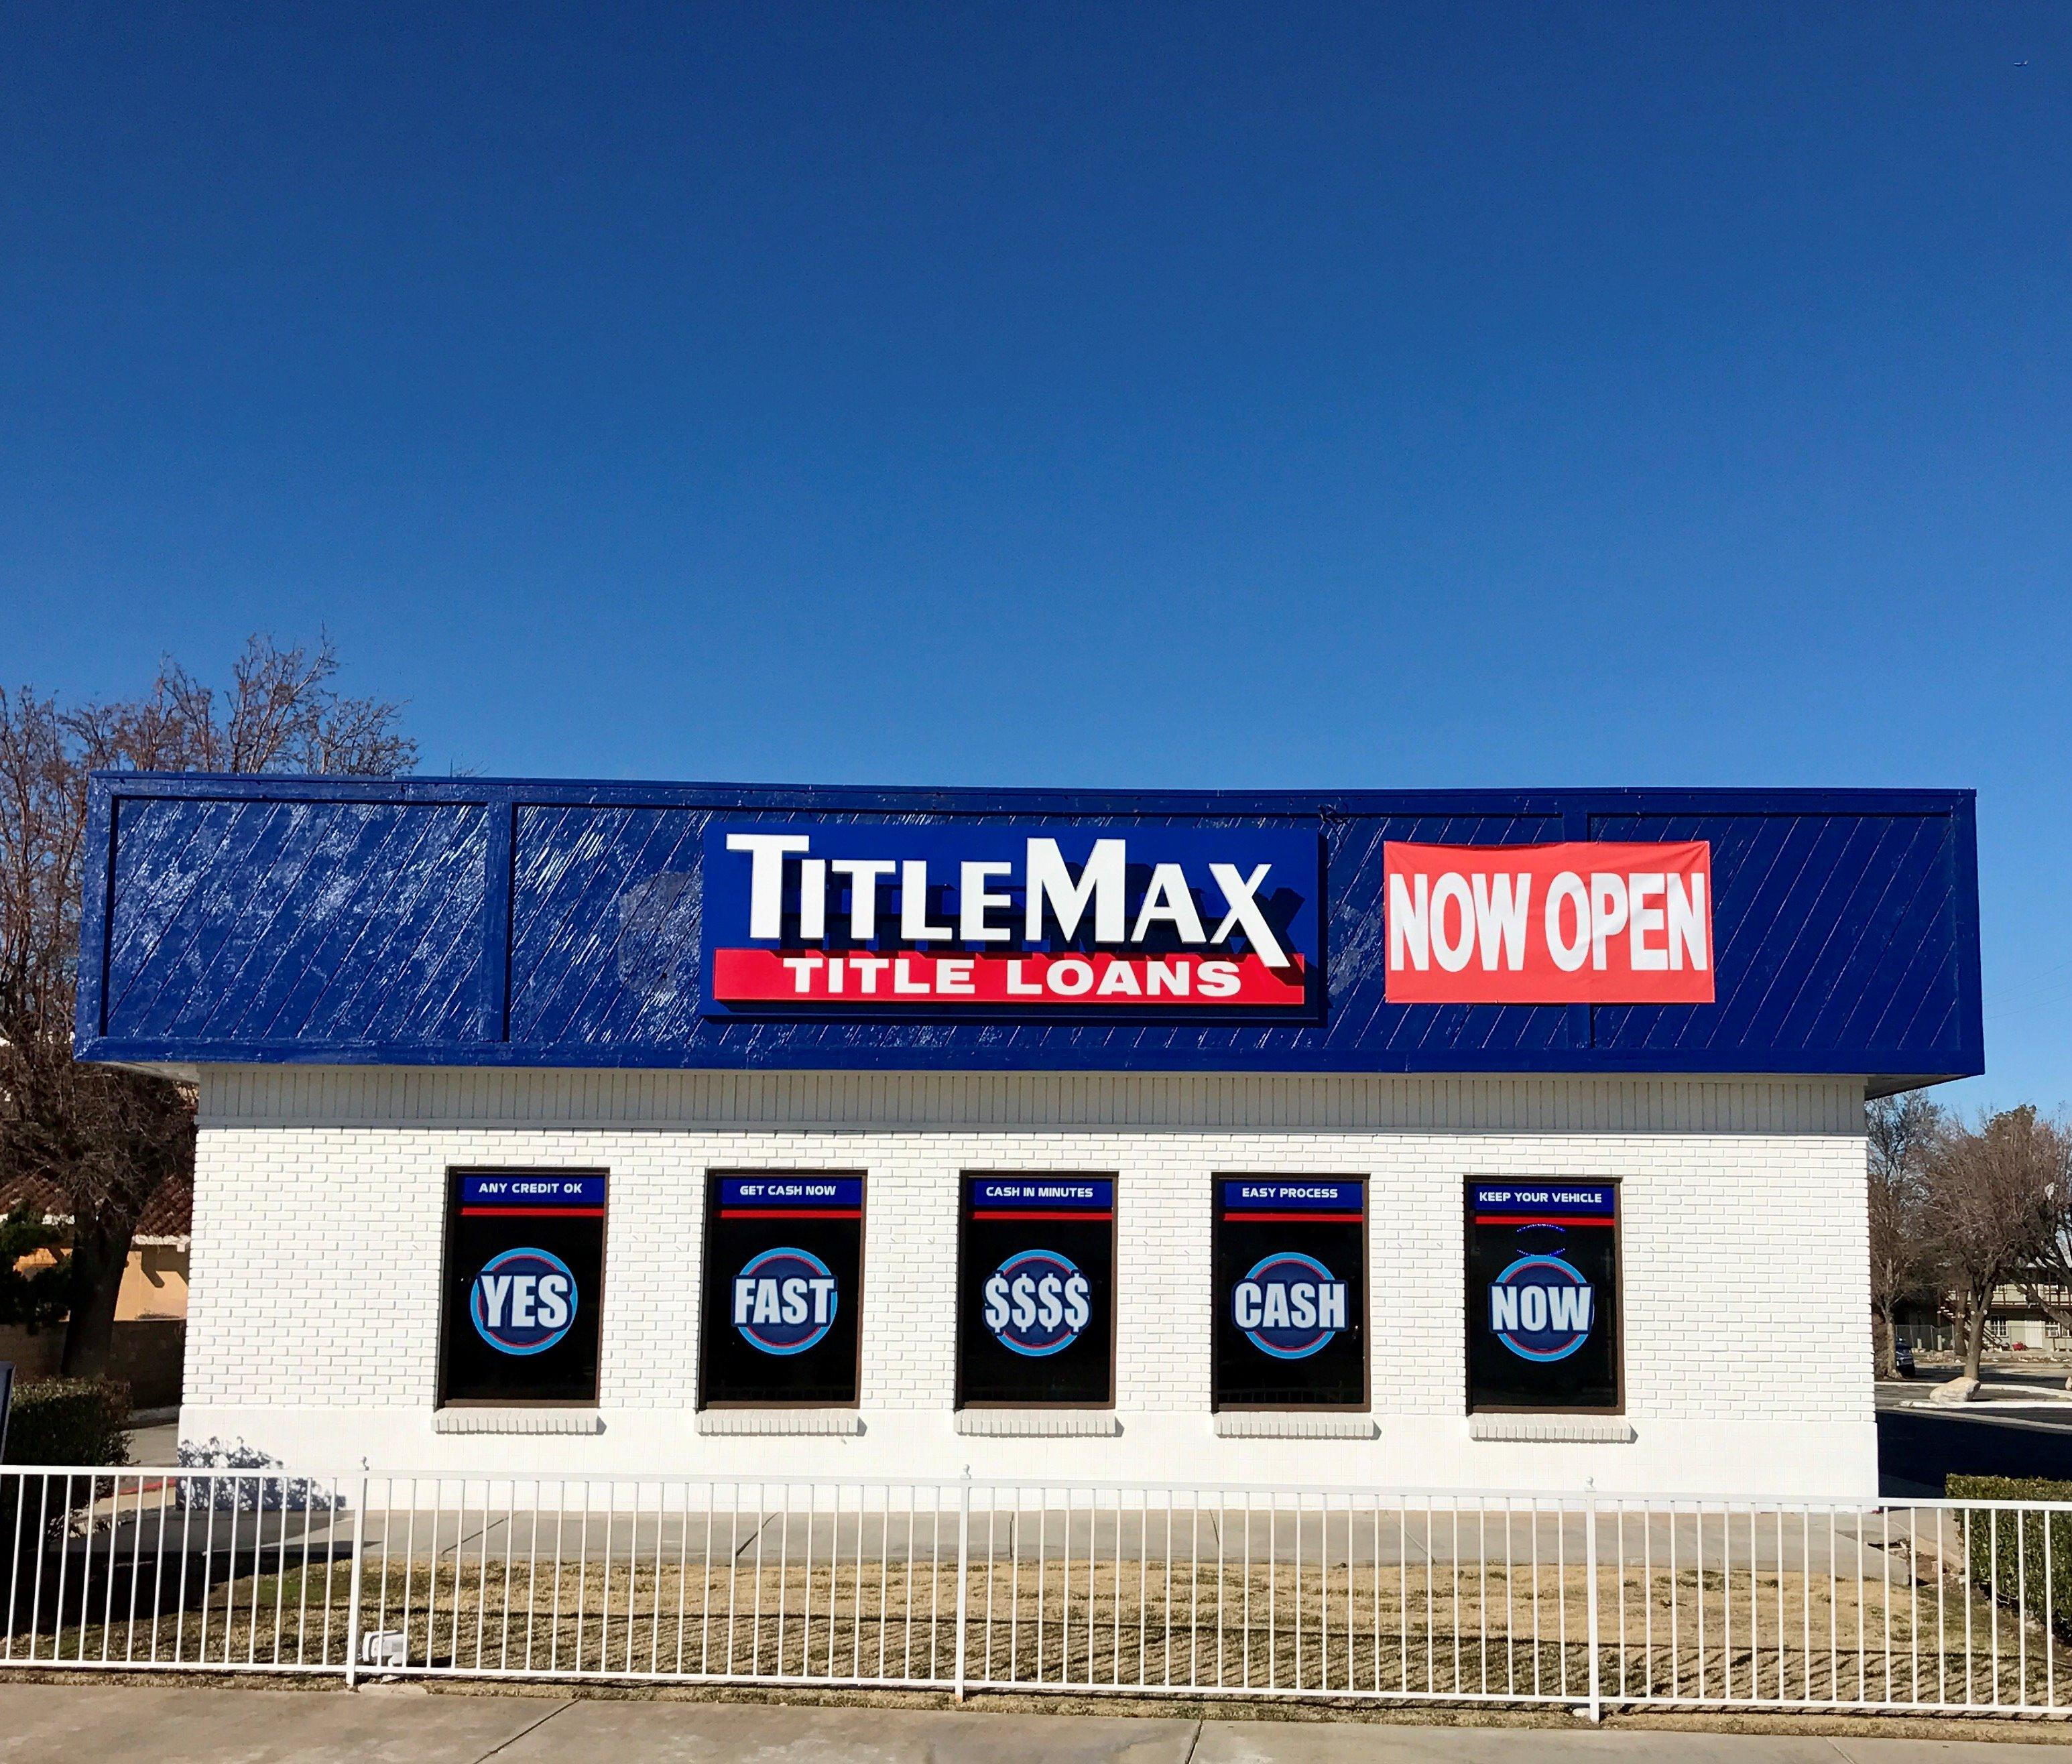 TITLEMAX TITLE LOANS In Palmdale, CA